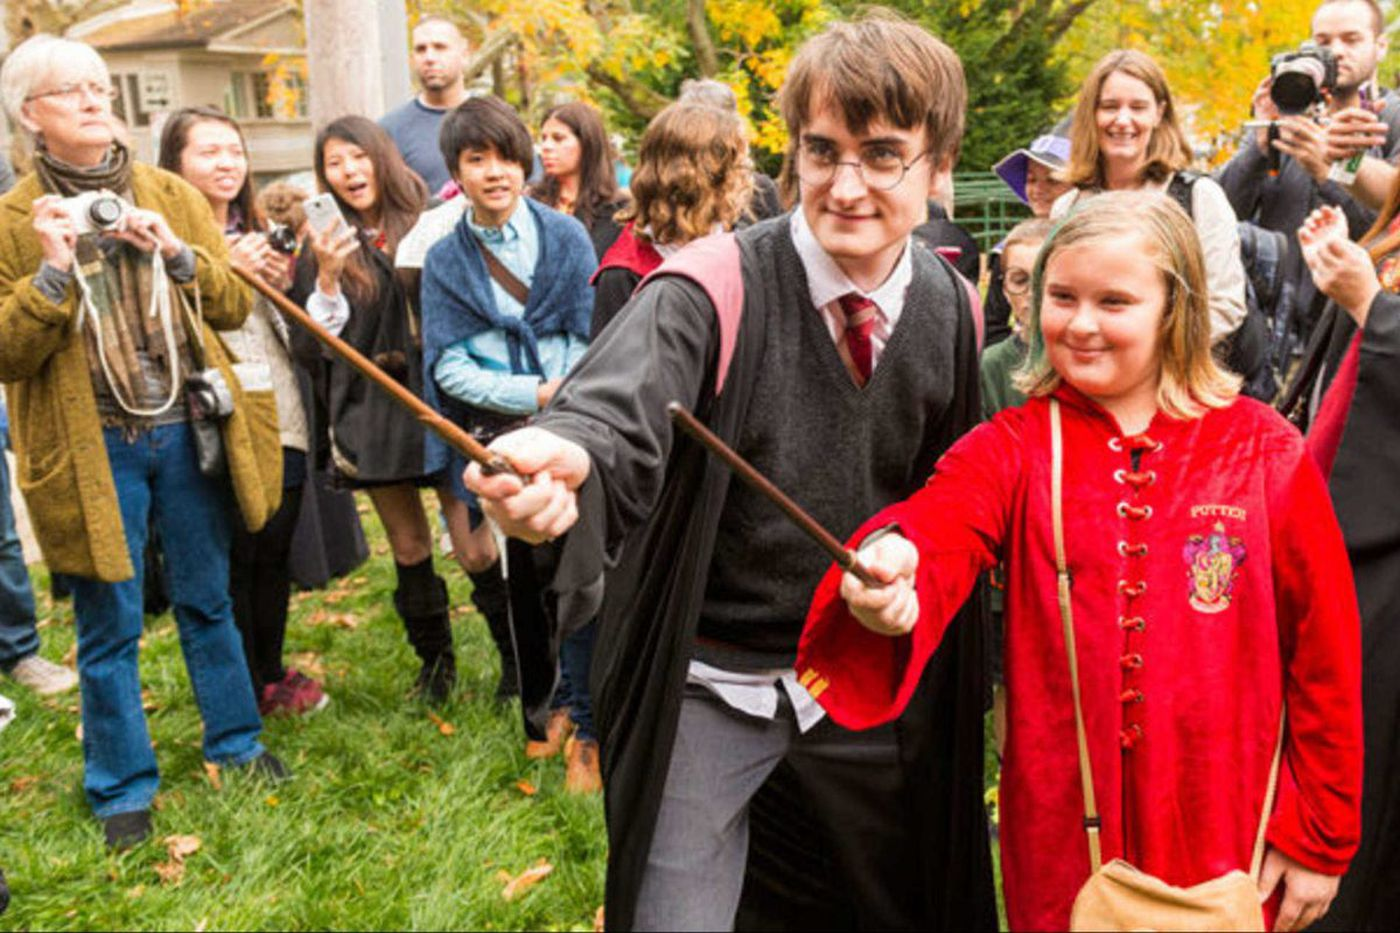 Your best bets for family fun in Philly this fall